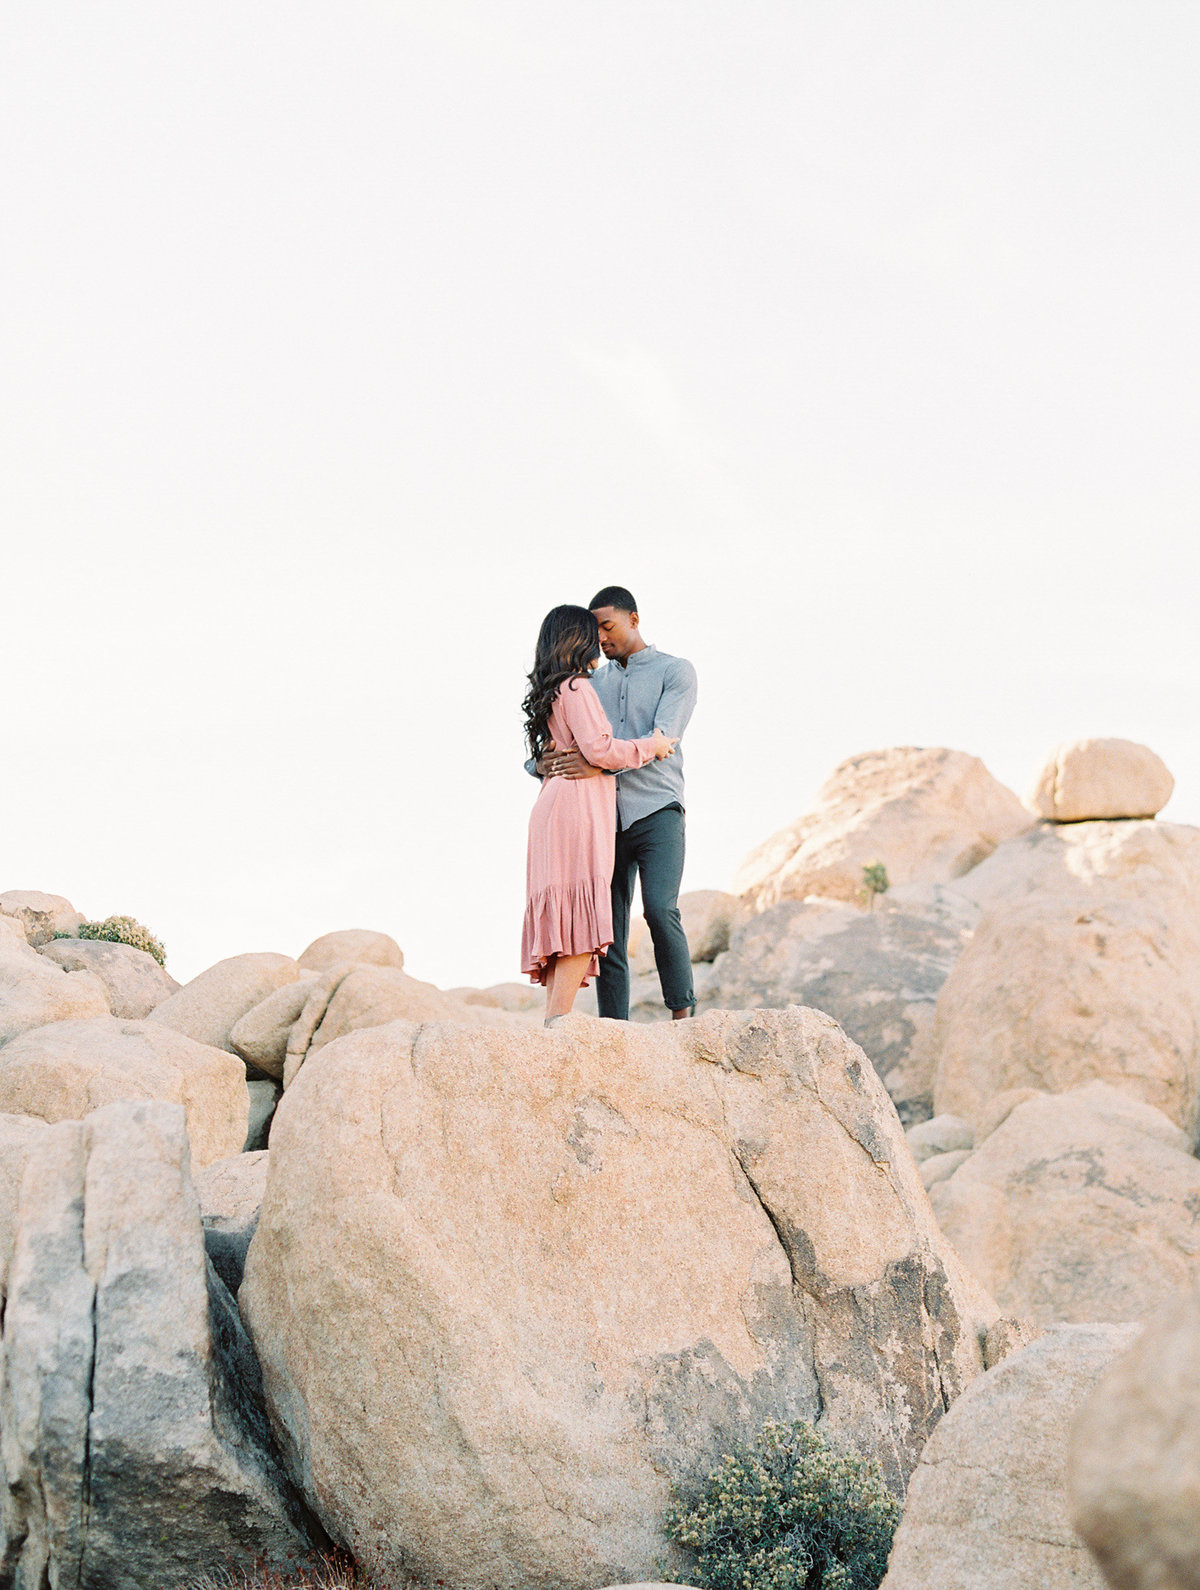 Babsie-Ly-Photography-Joshua-Tree-Engagement-Photography-Fine-Art-Film-MarinaEvan-002